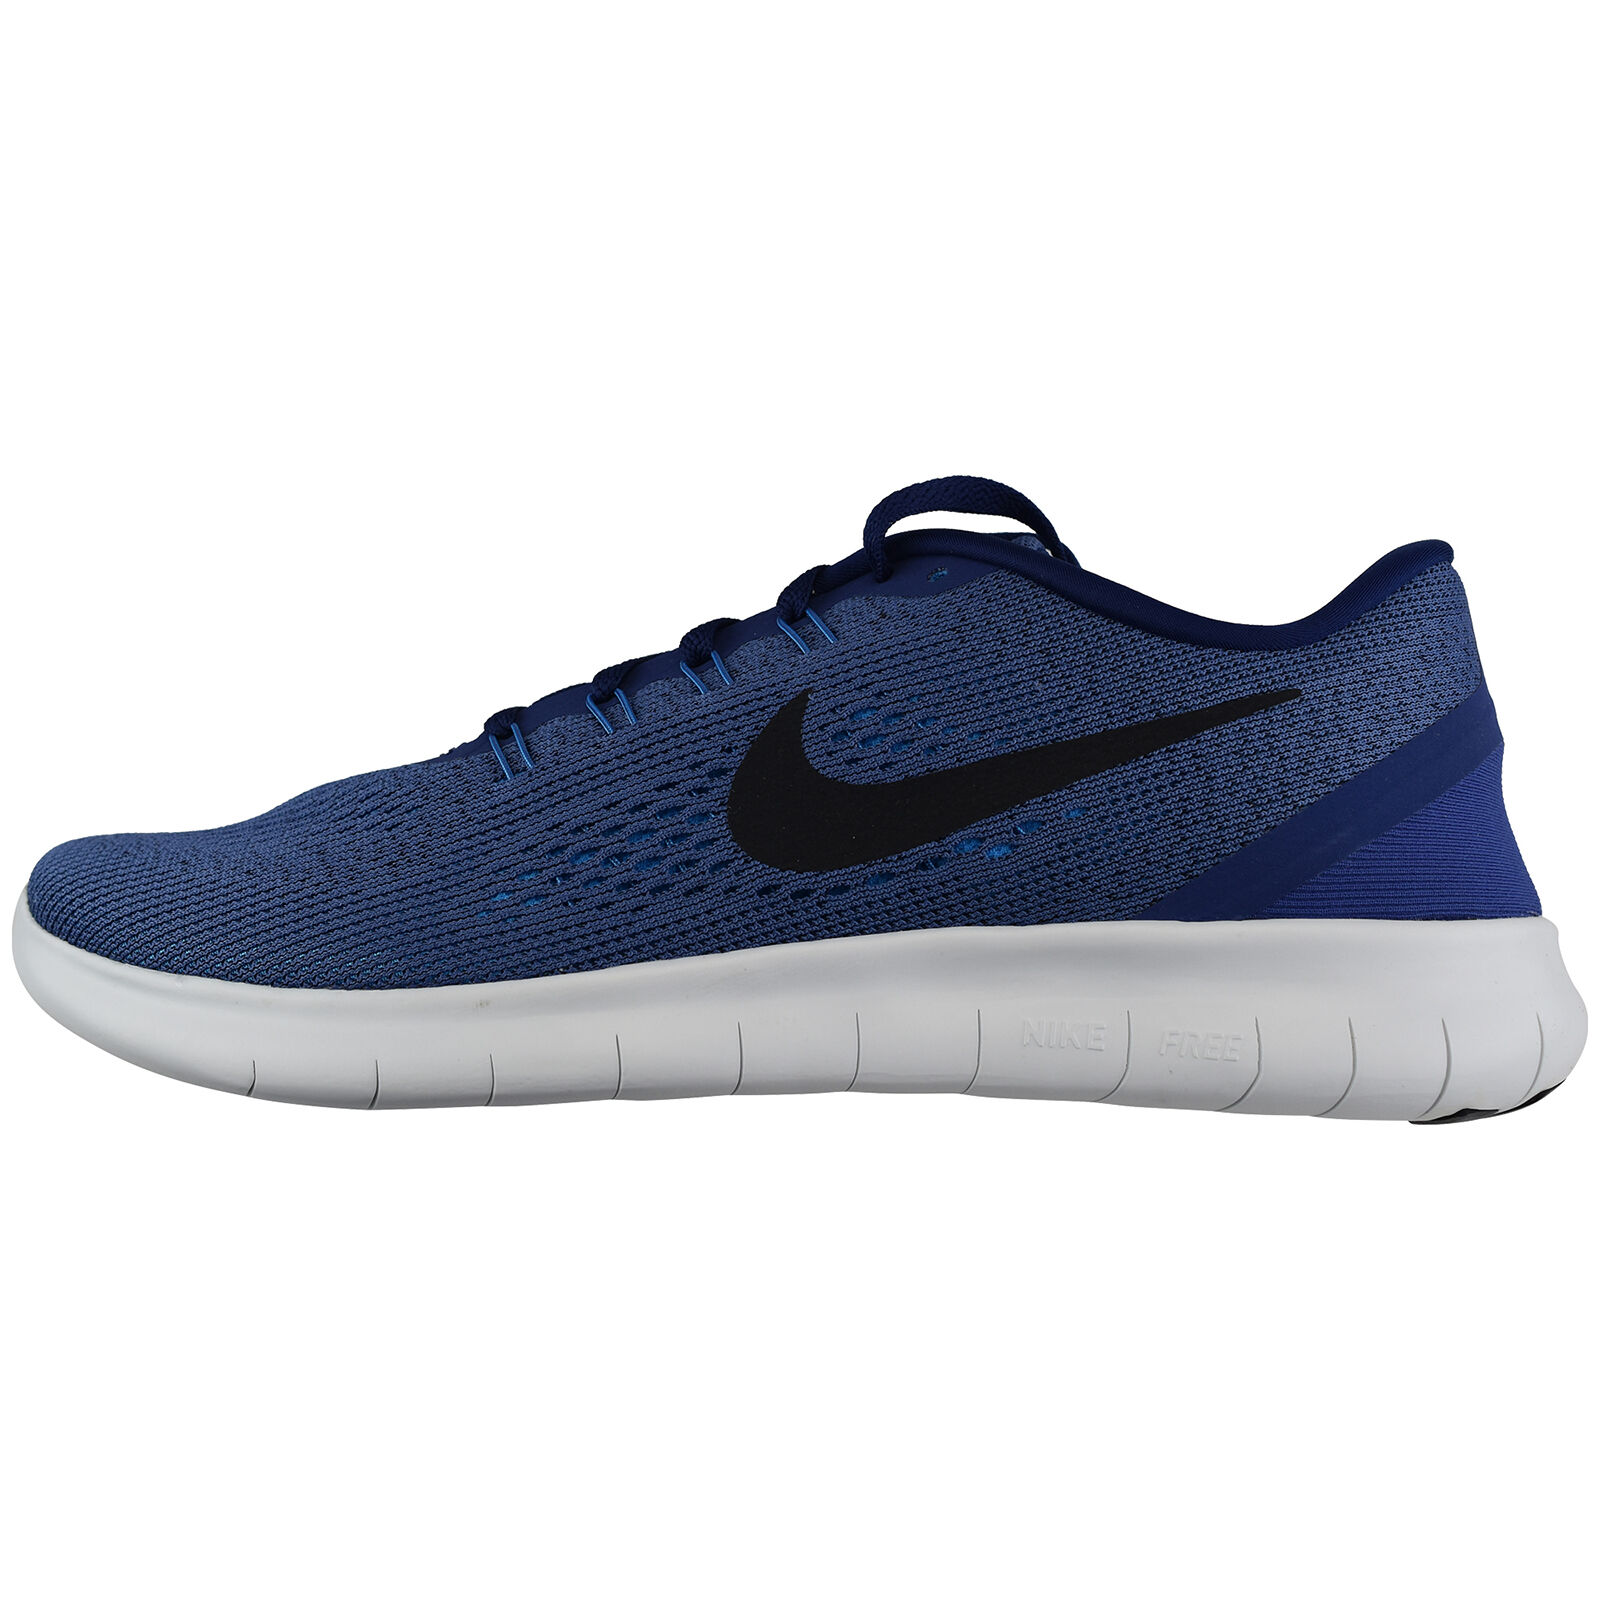 Nike Free Rn 831508-500 Lifestyle Running shoes Running Running Casual Trainers